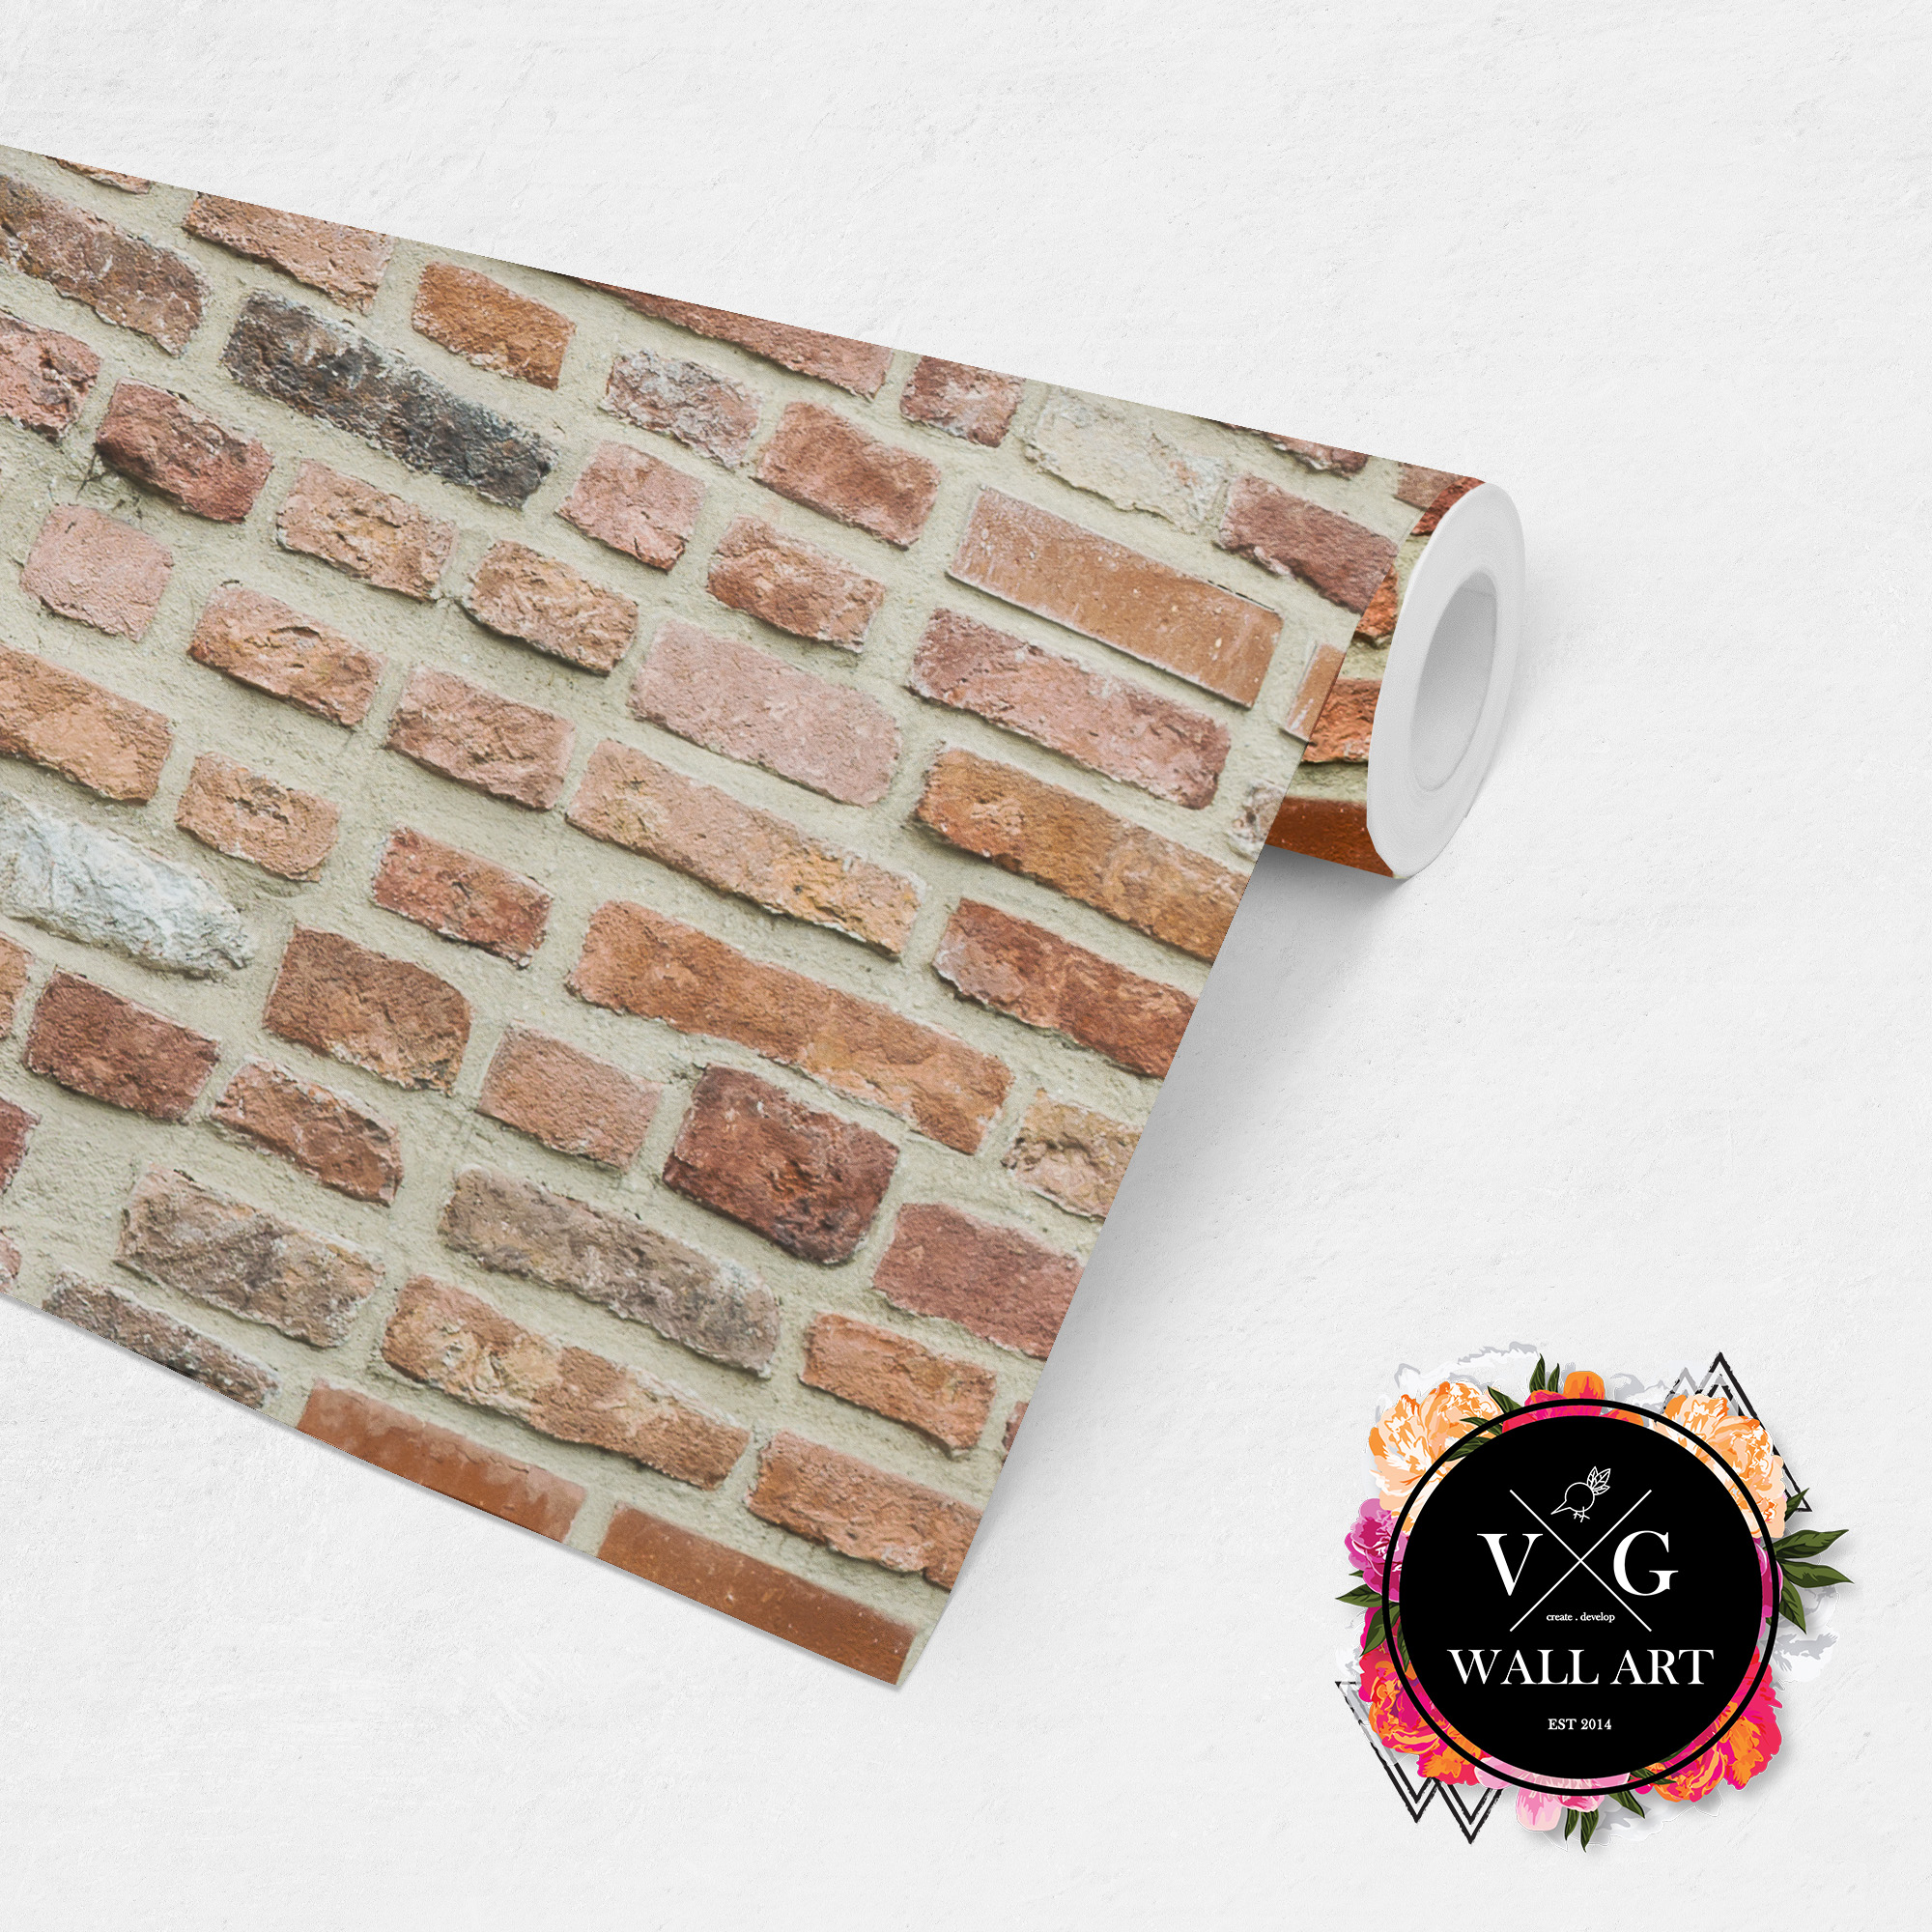 Roll Display_Red Brick